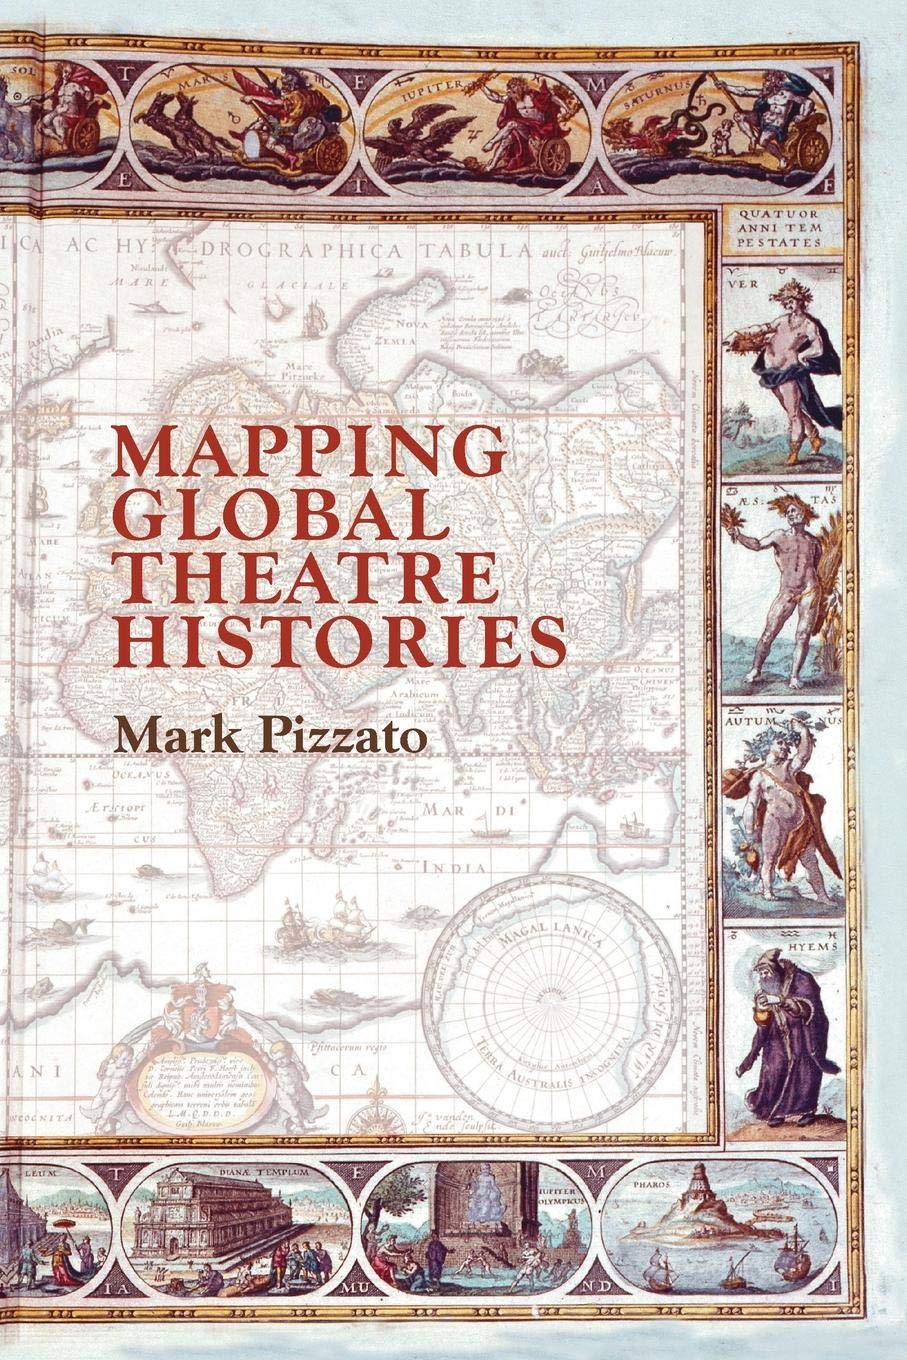 Amazon.com: Mapping Global Theatre Histories (9783030127268 ...